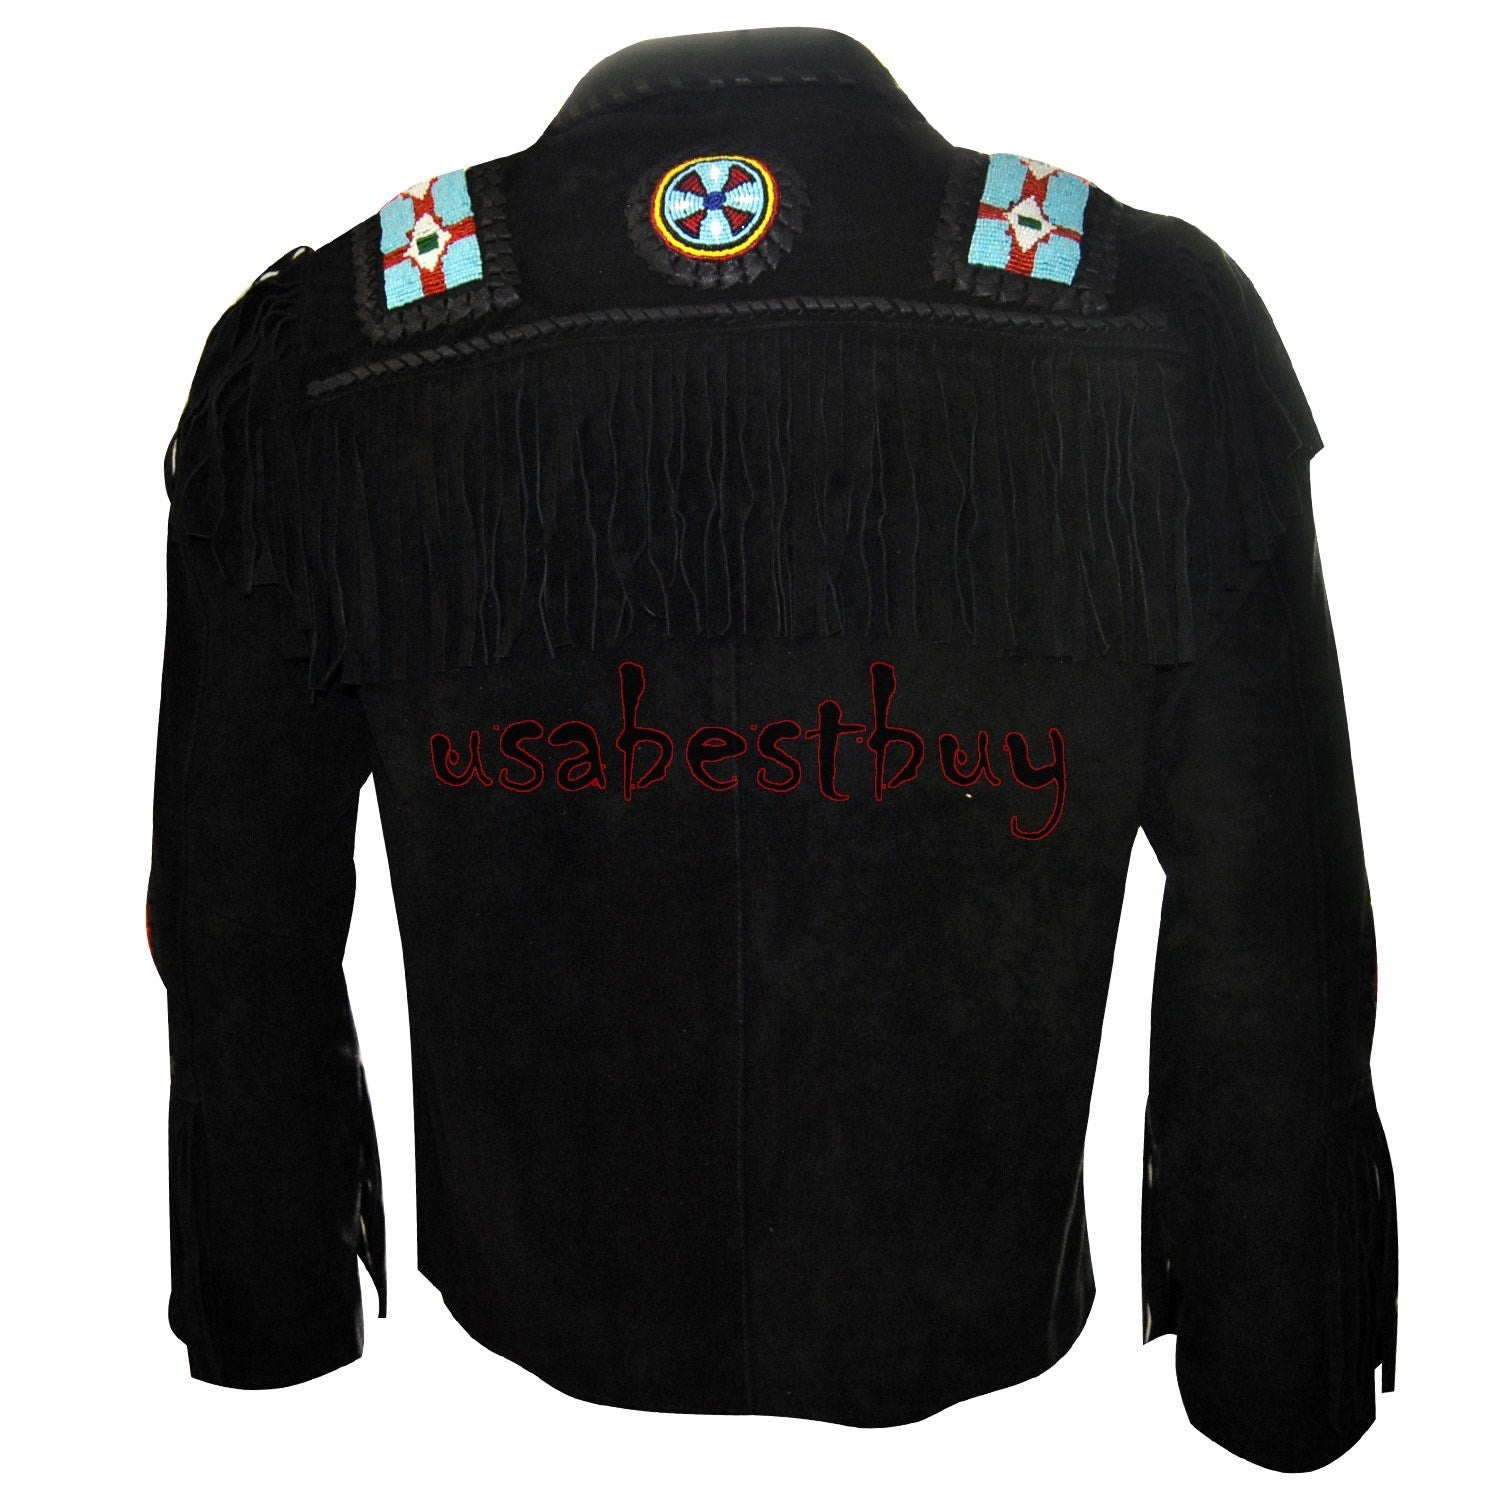 New Men Black Suede Leather Western Cowboy Jacket With Fringe, Bone and Beads